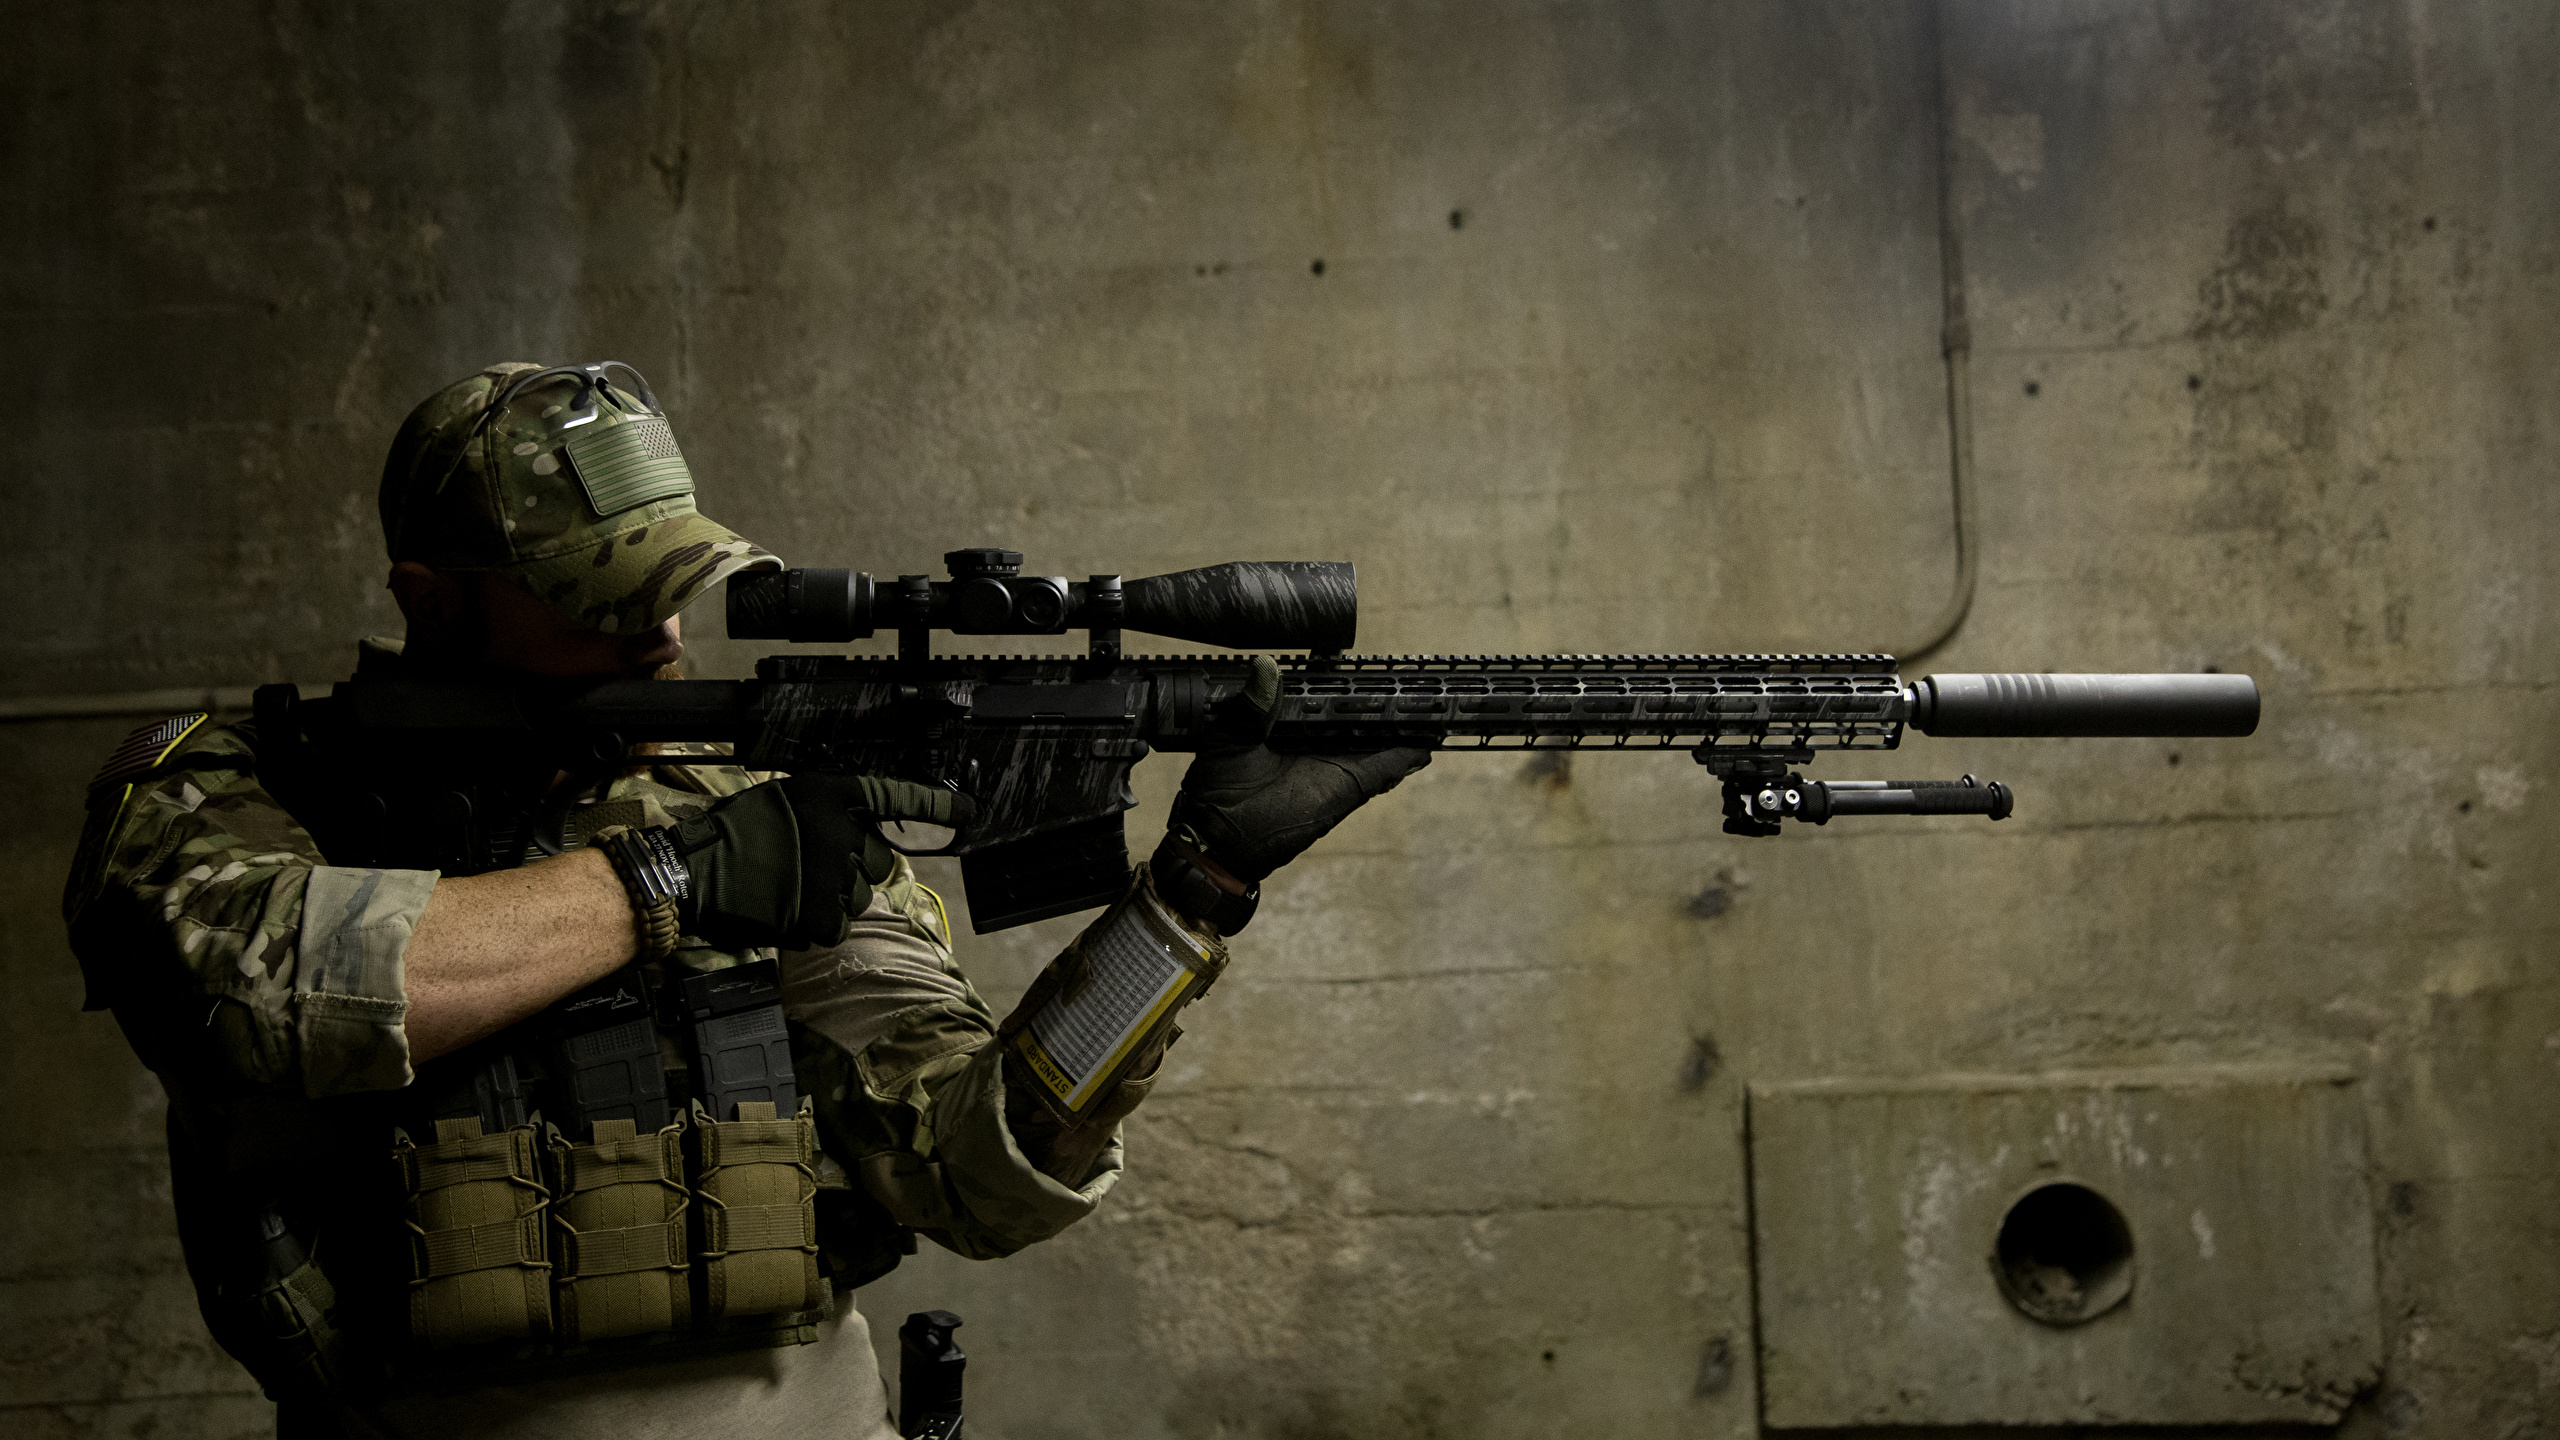 Wallpaper Sniper Rifle Snipers Soldiers Army 2560x1440